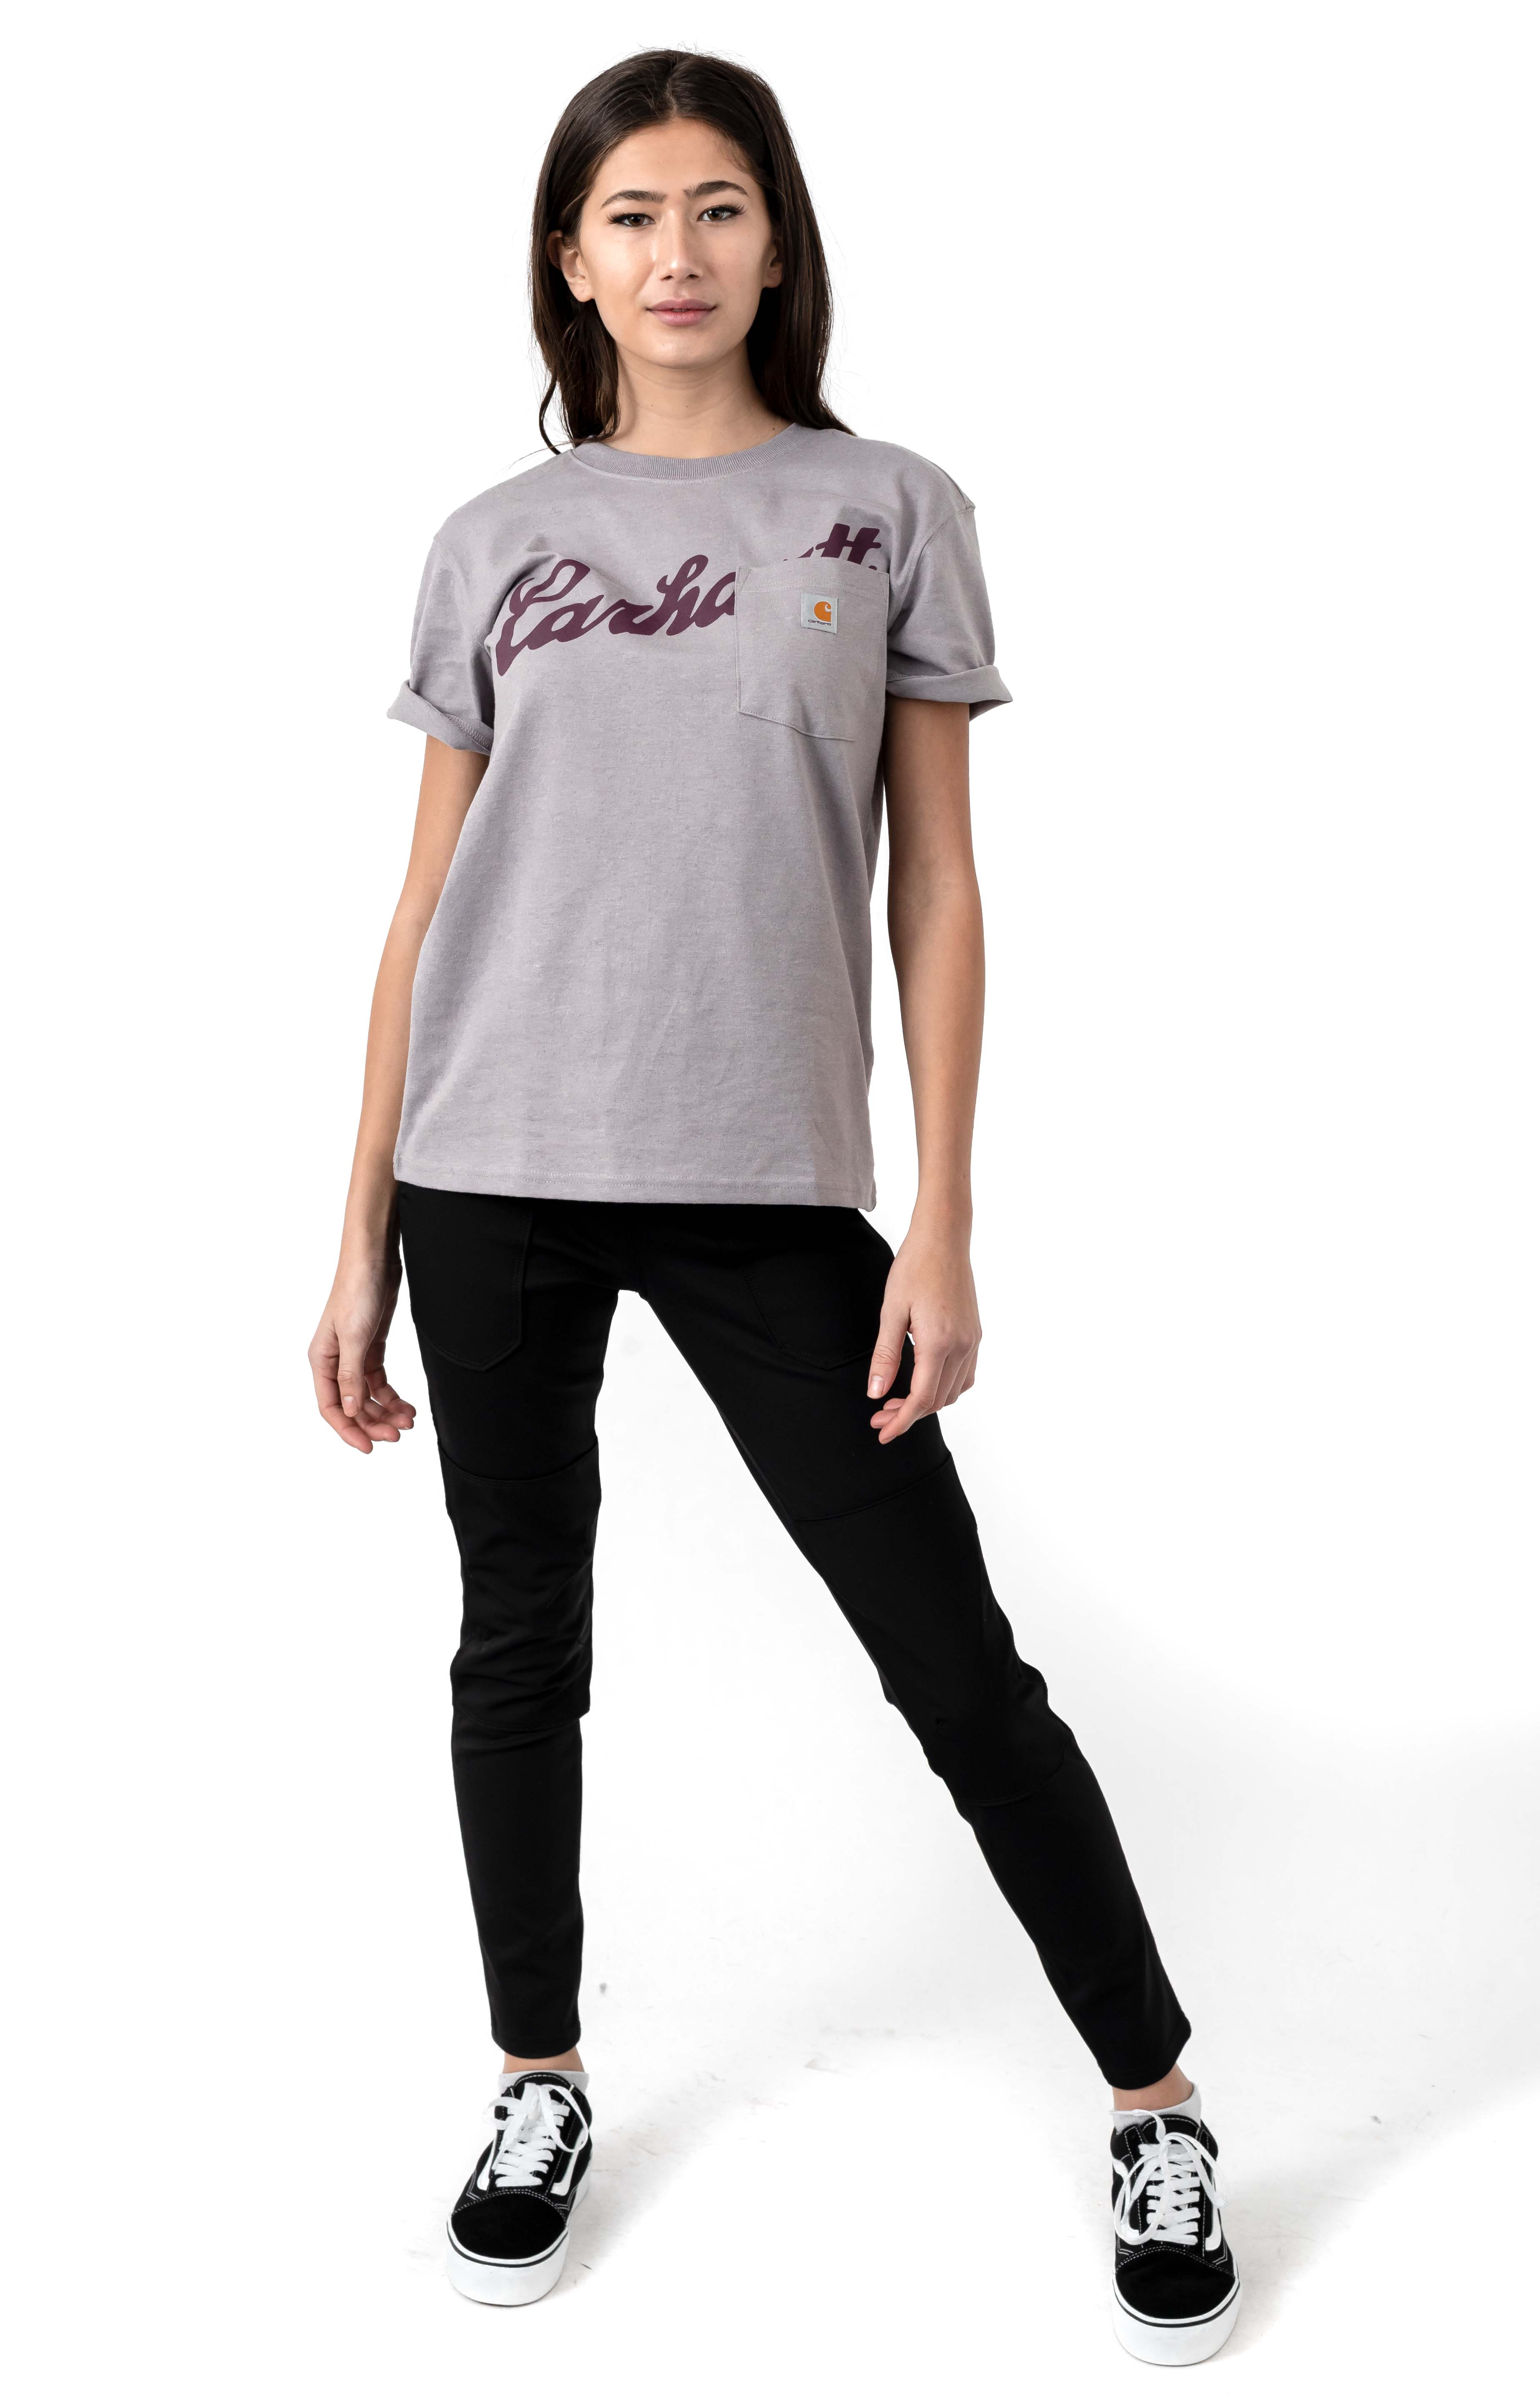 (104356) Original Fit Pocket Graphic T-Shirt - Gull Gray Heather 4